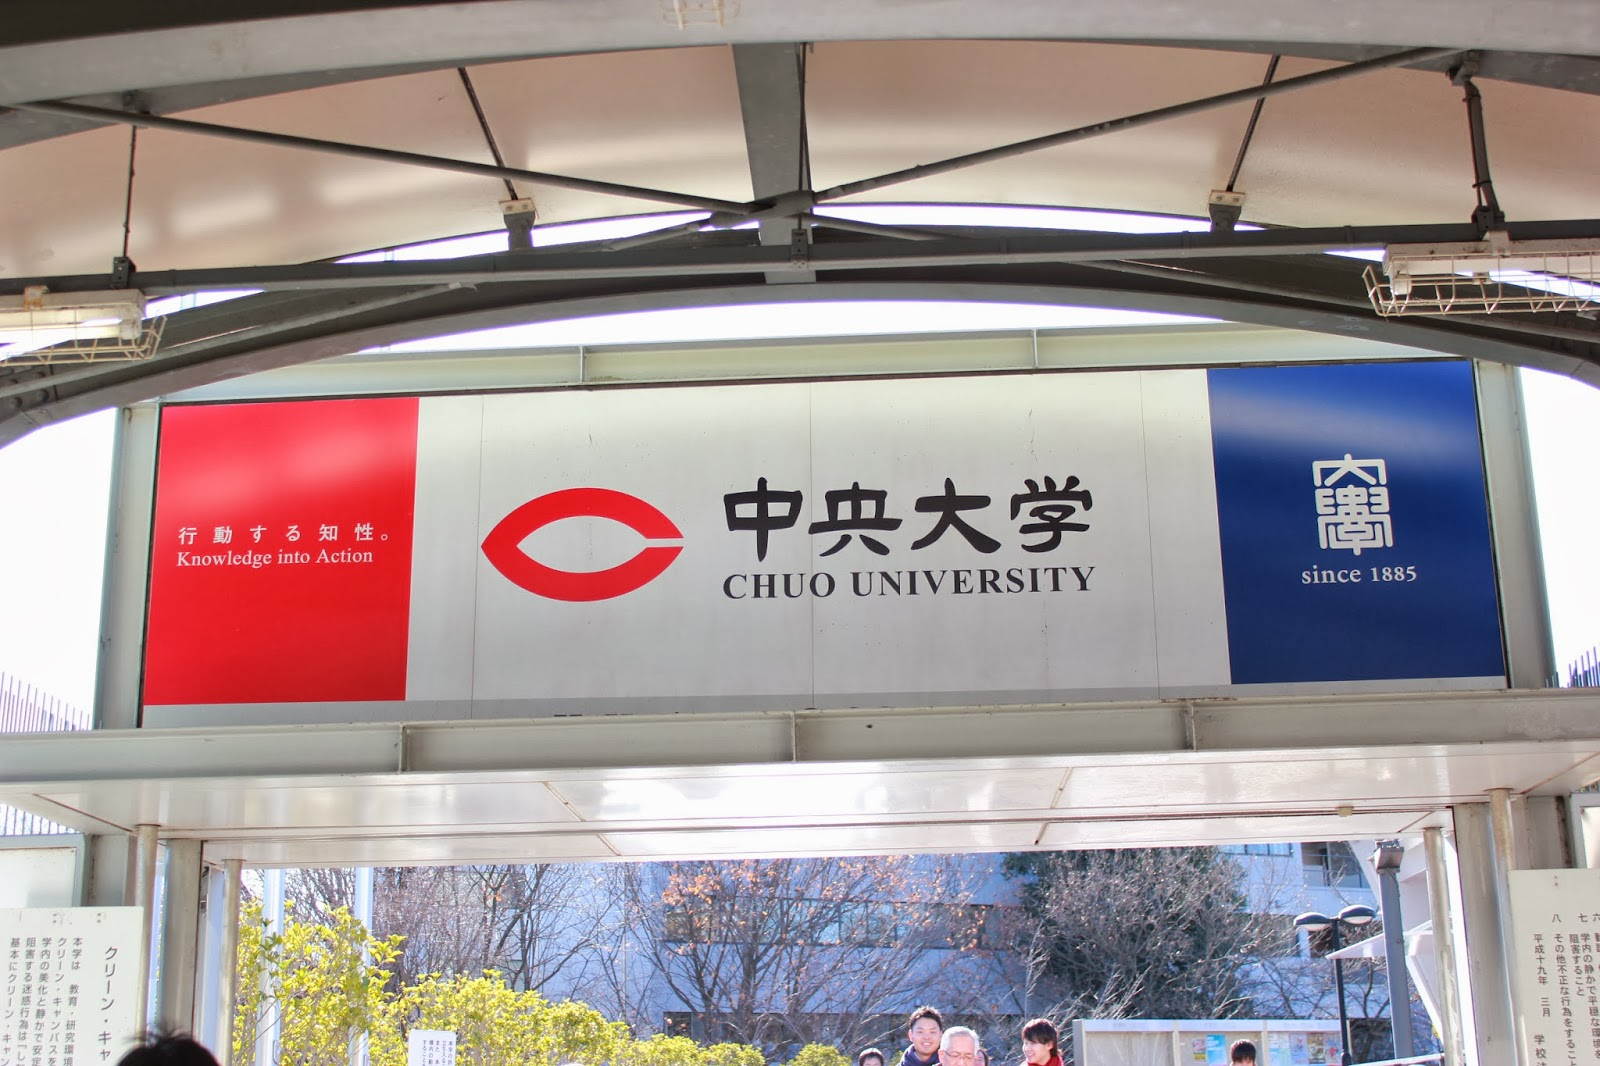 Chuo University Monorail Entryway